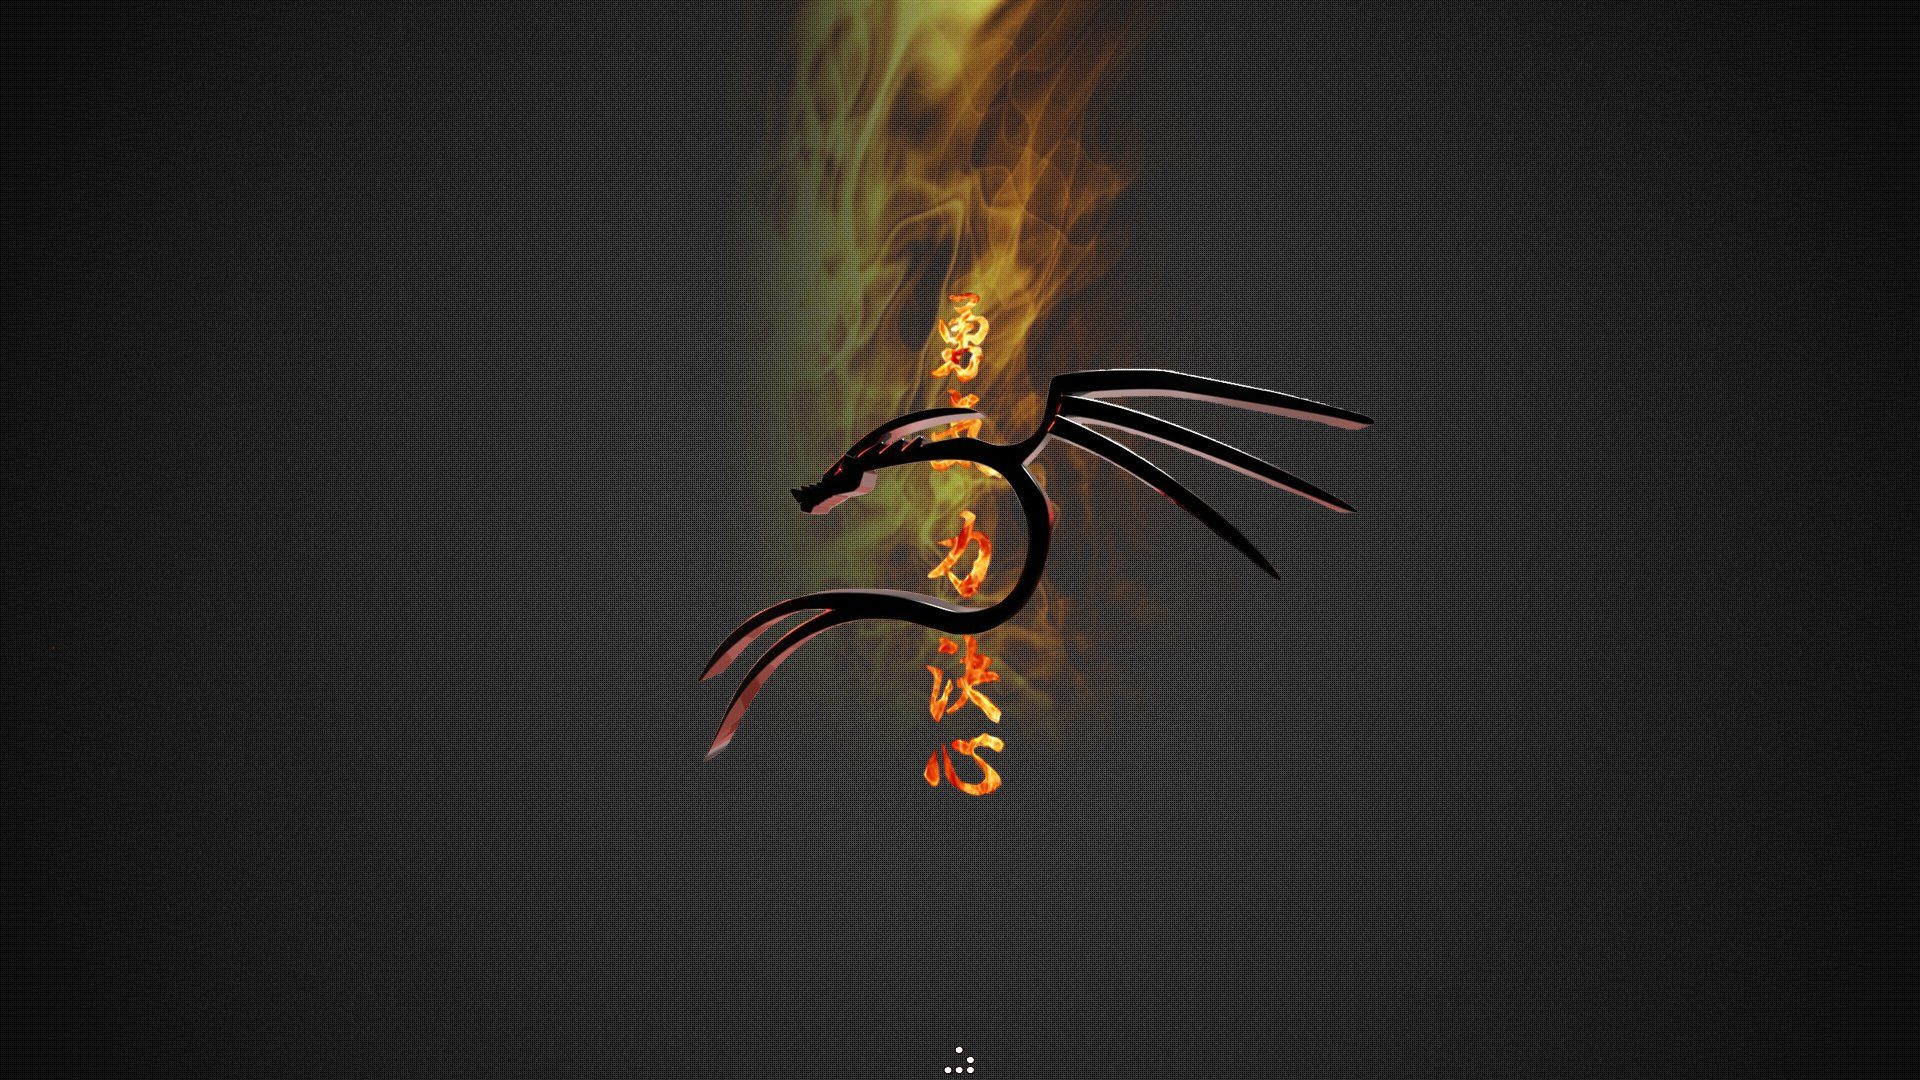 Kali Linux Android Wallpapers Wallpaper Cave